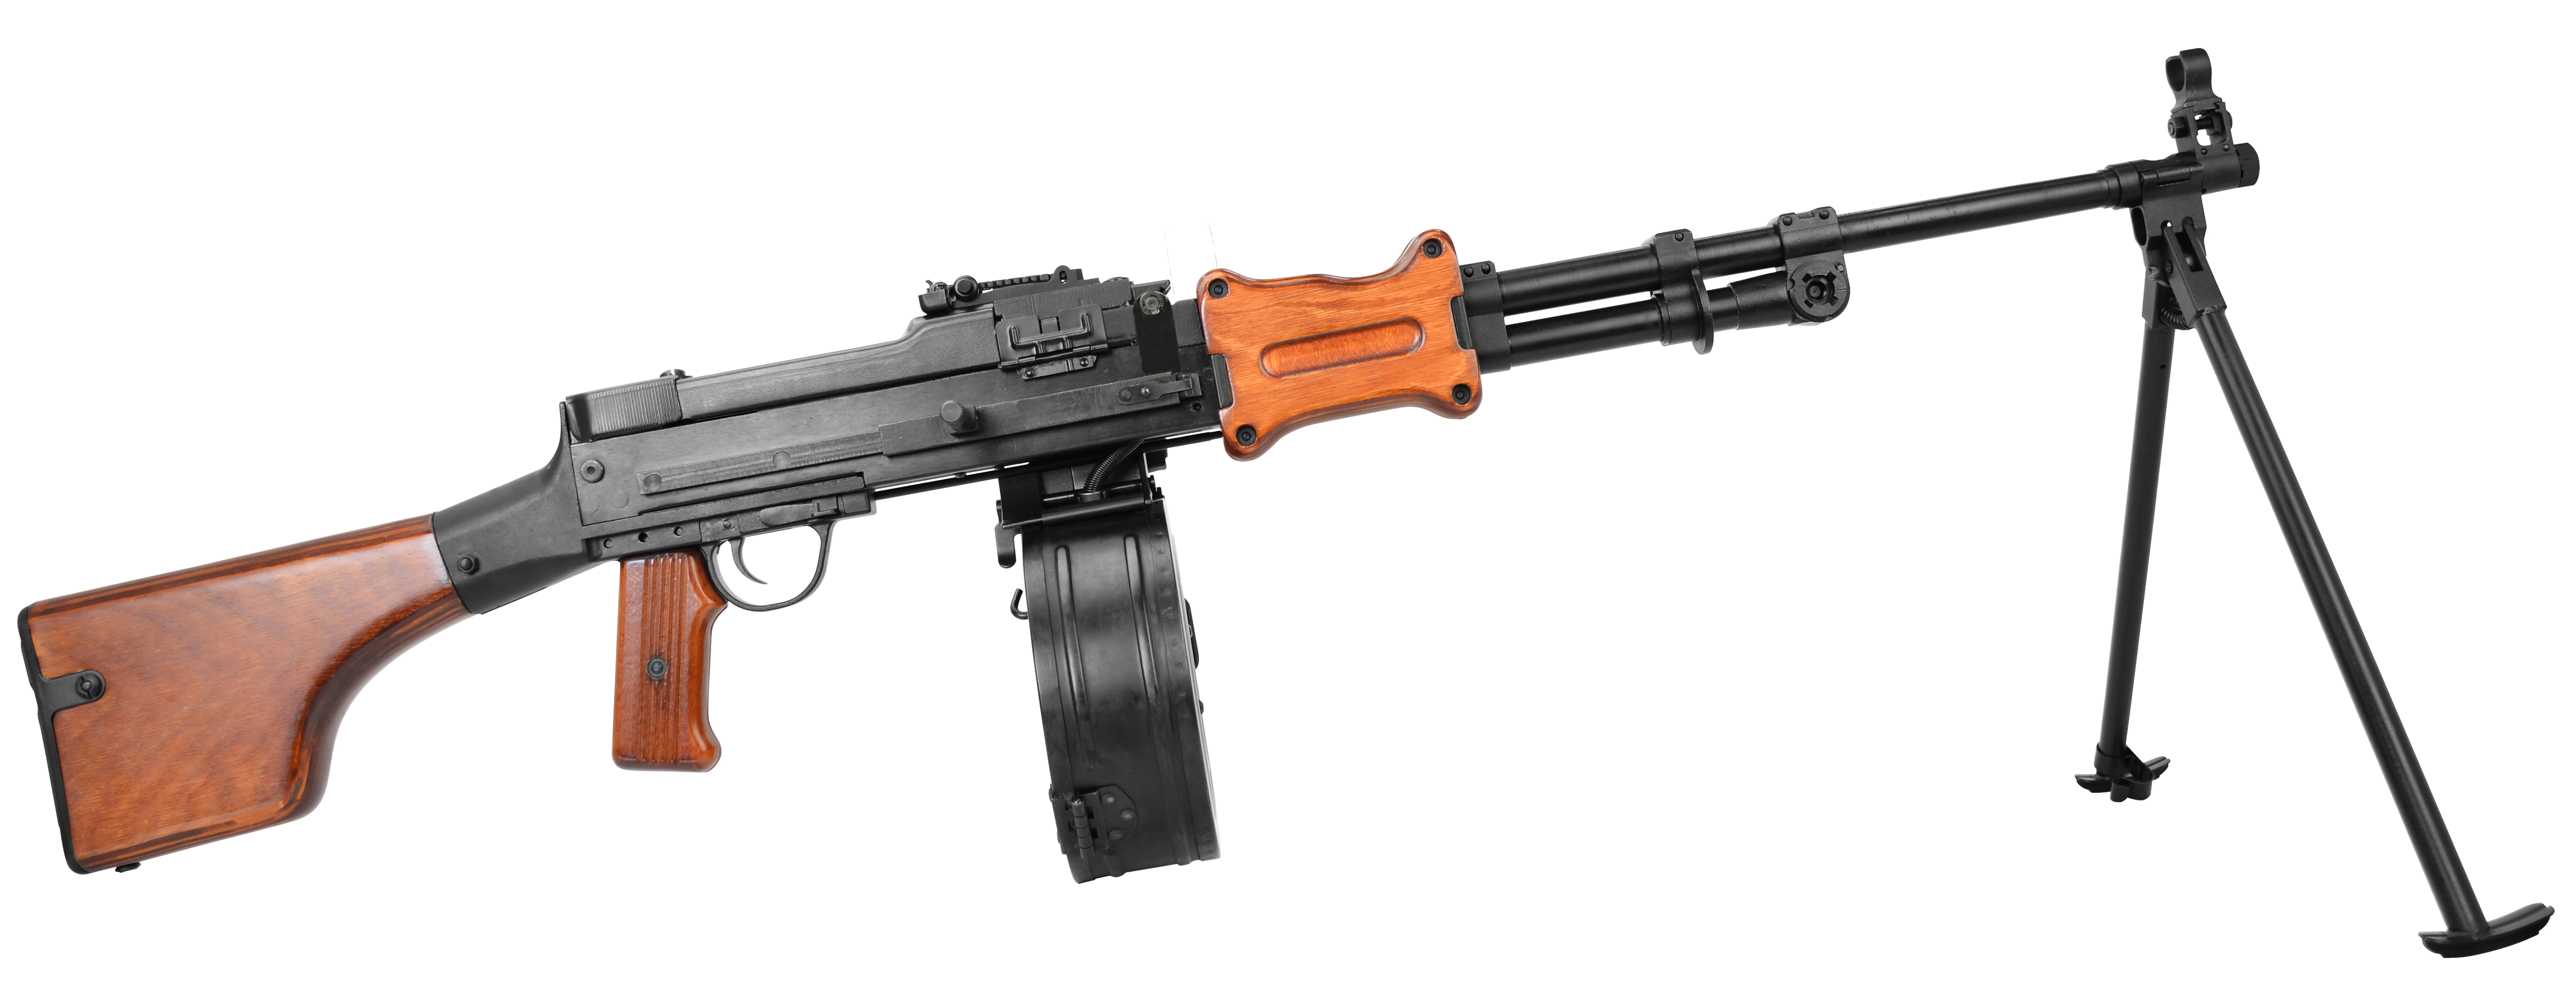 LCT Airsoft starts RPD AEG & Keymod pre-orders! - NLAIRSOFT COM